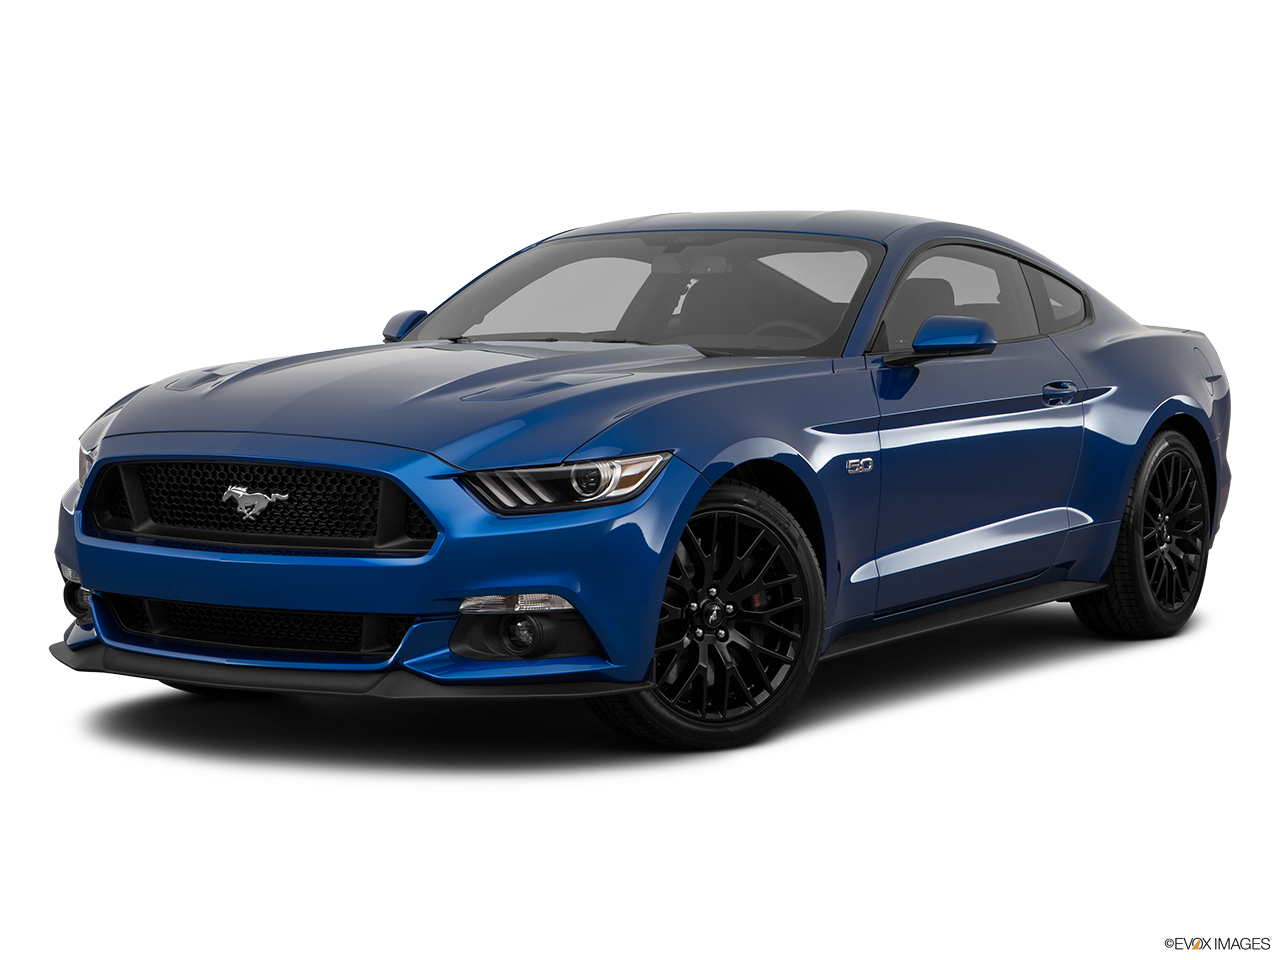 Clipart cars 2015 mustang. Ford png image purepng